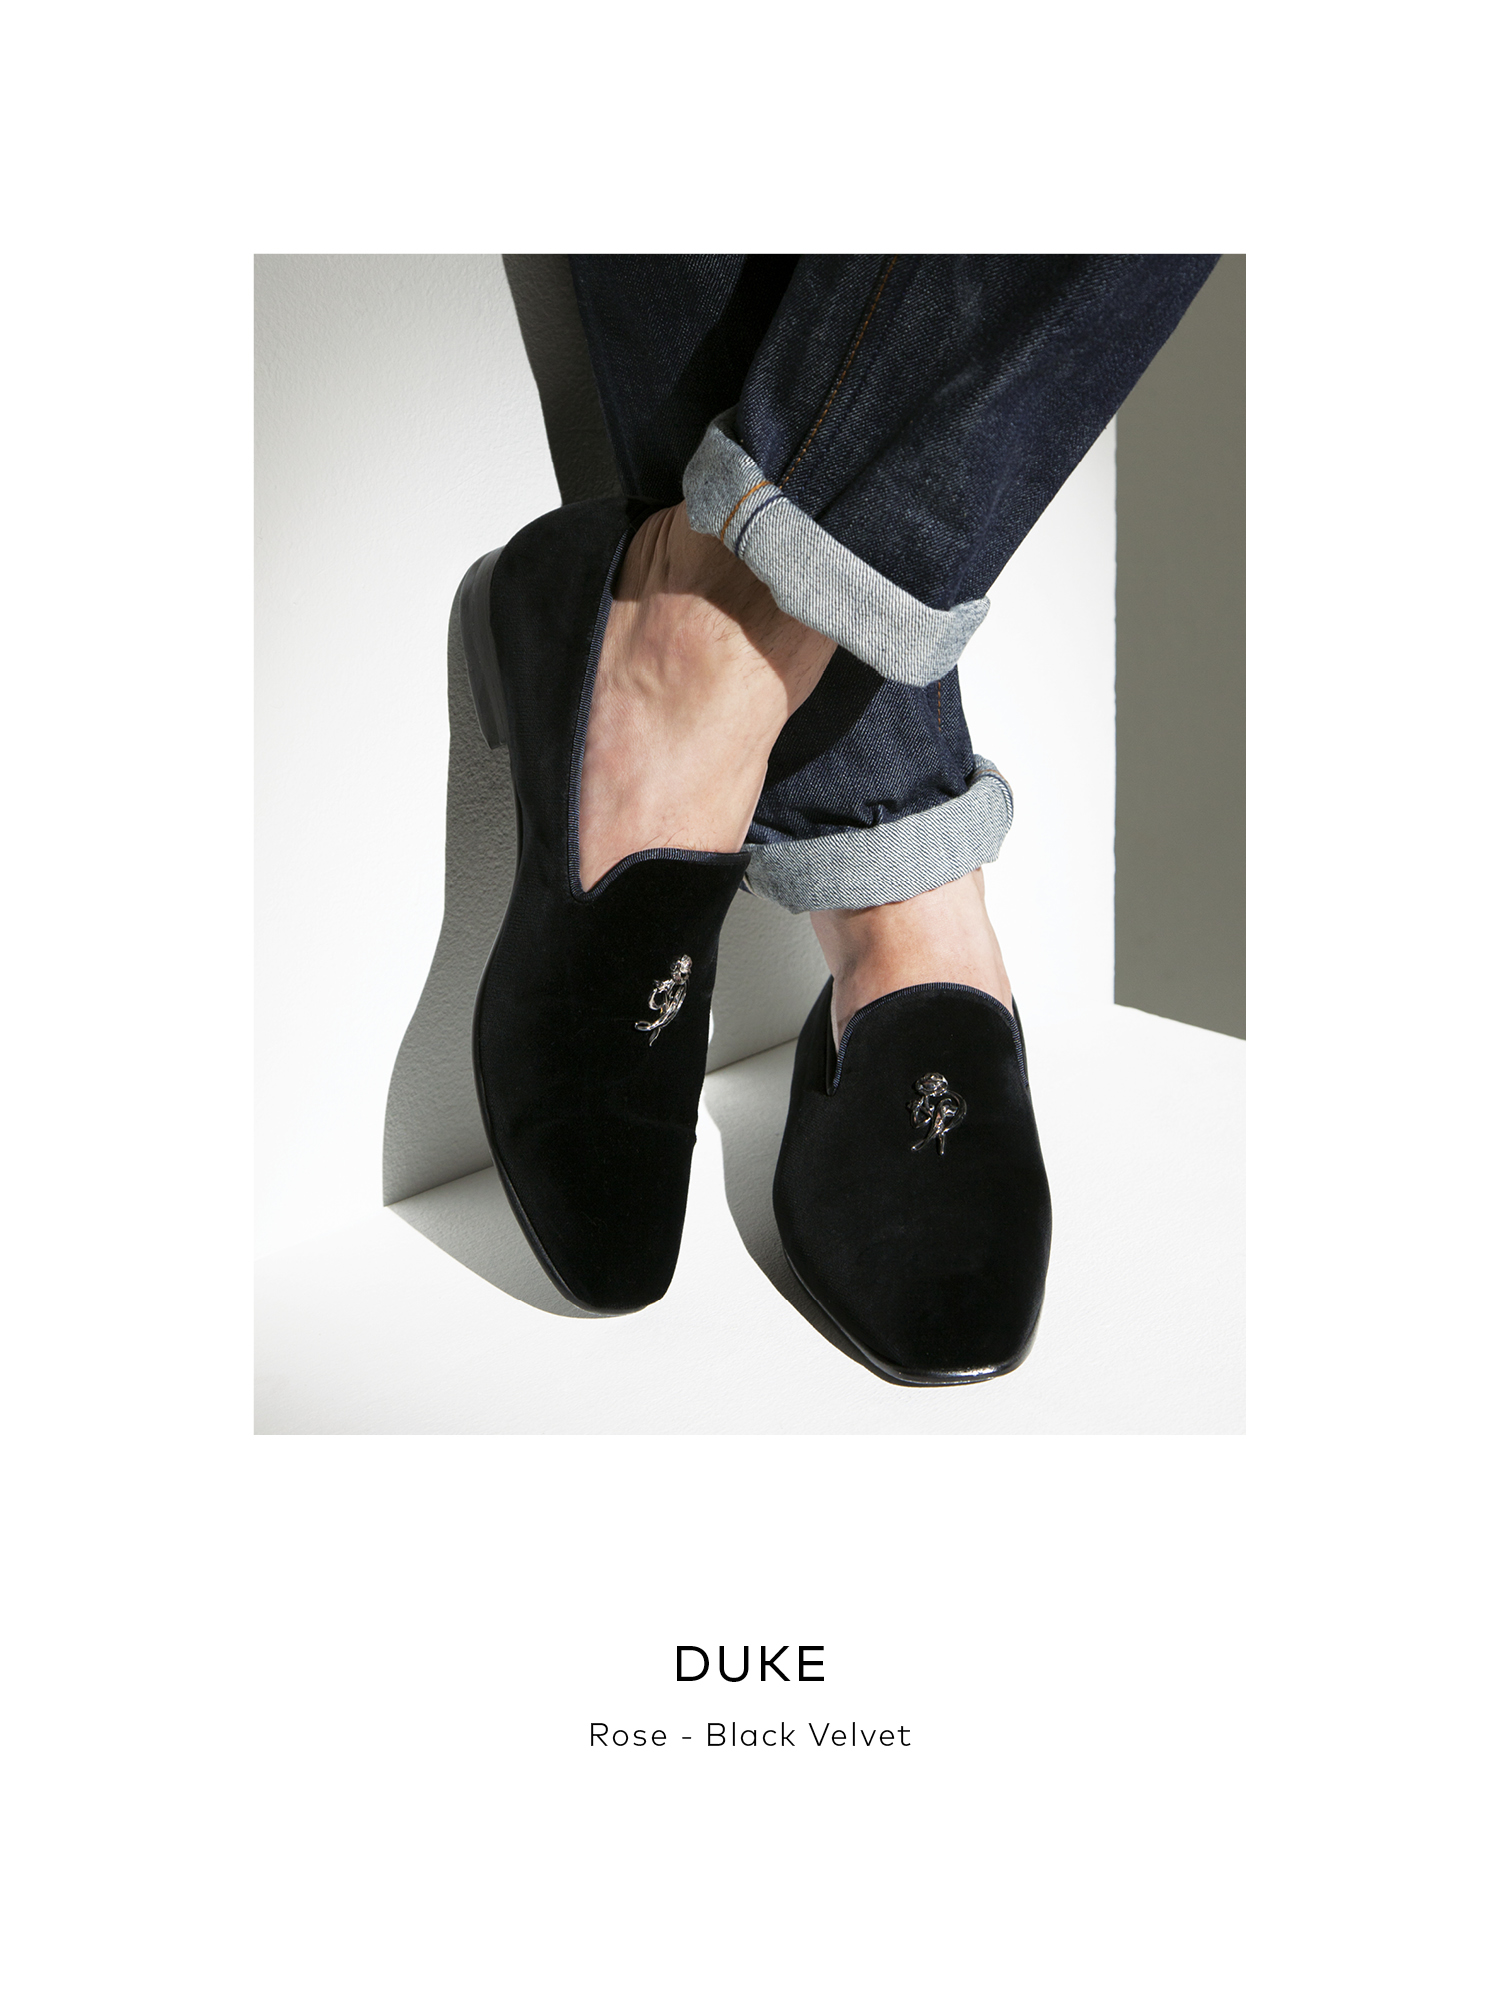 Duke, Rose - Black Velvet